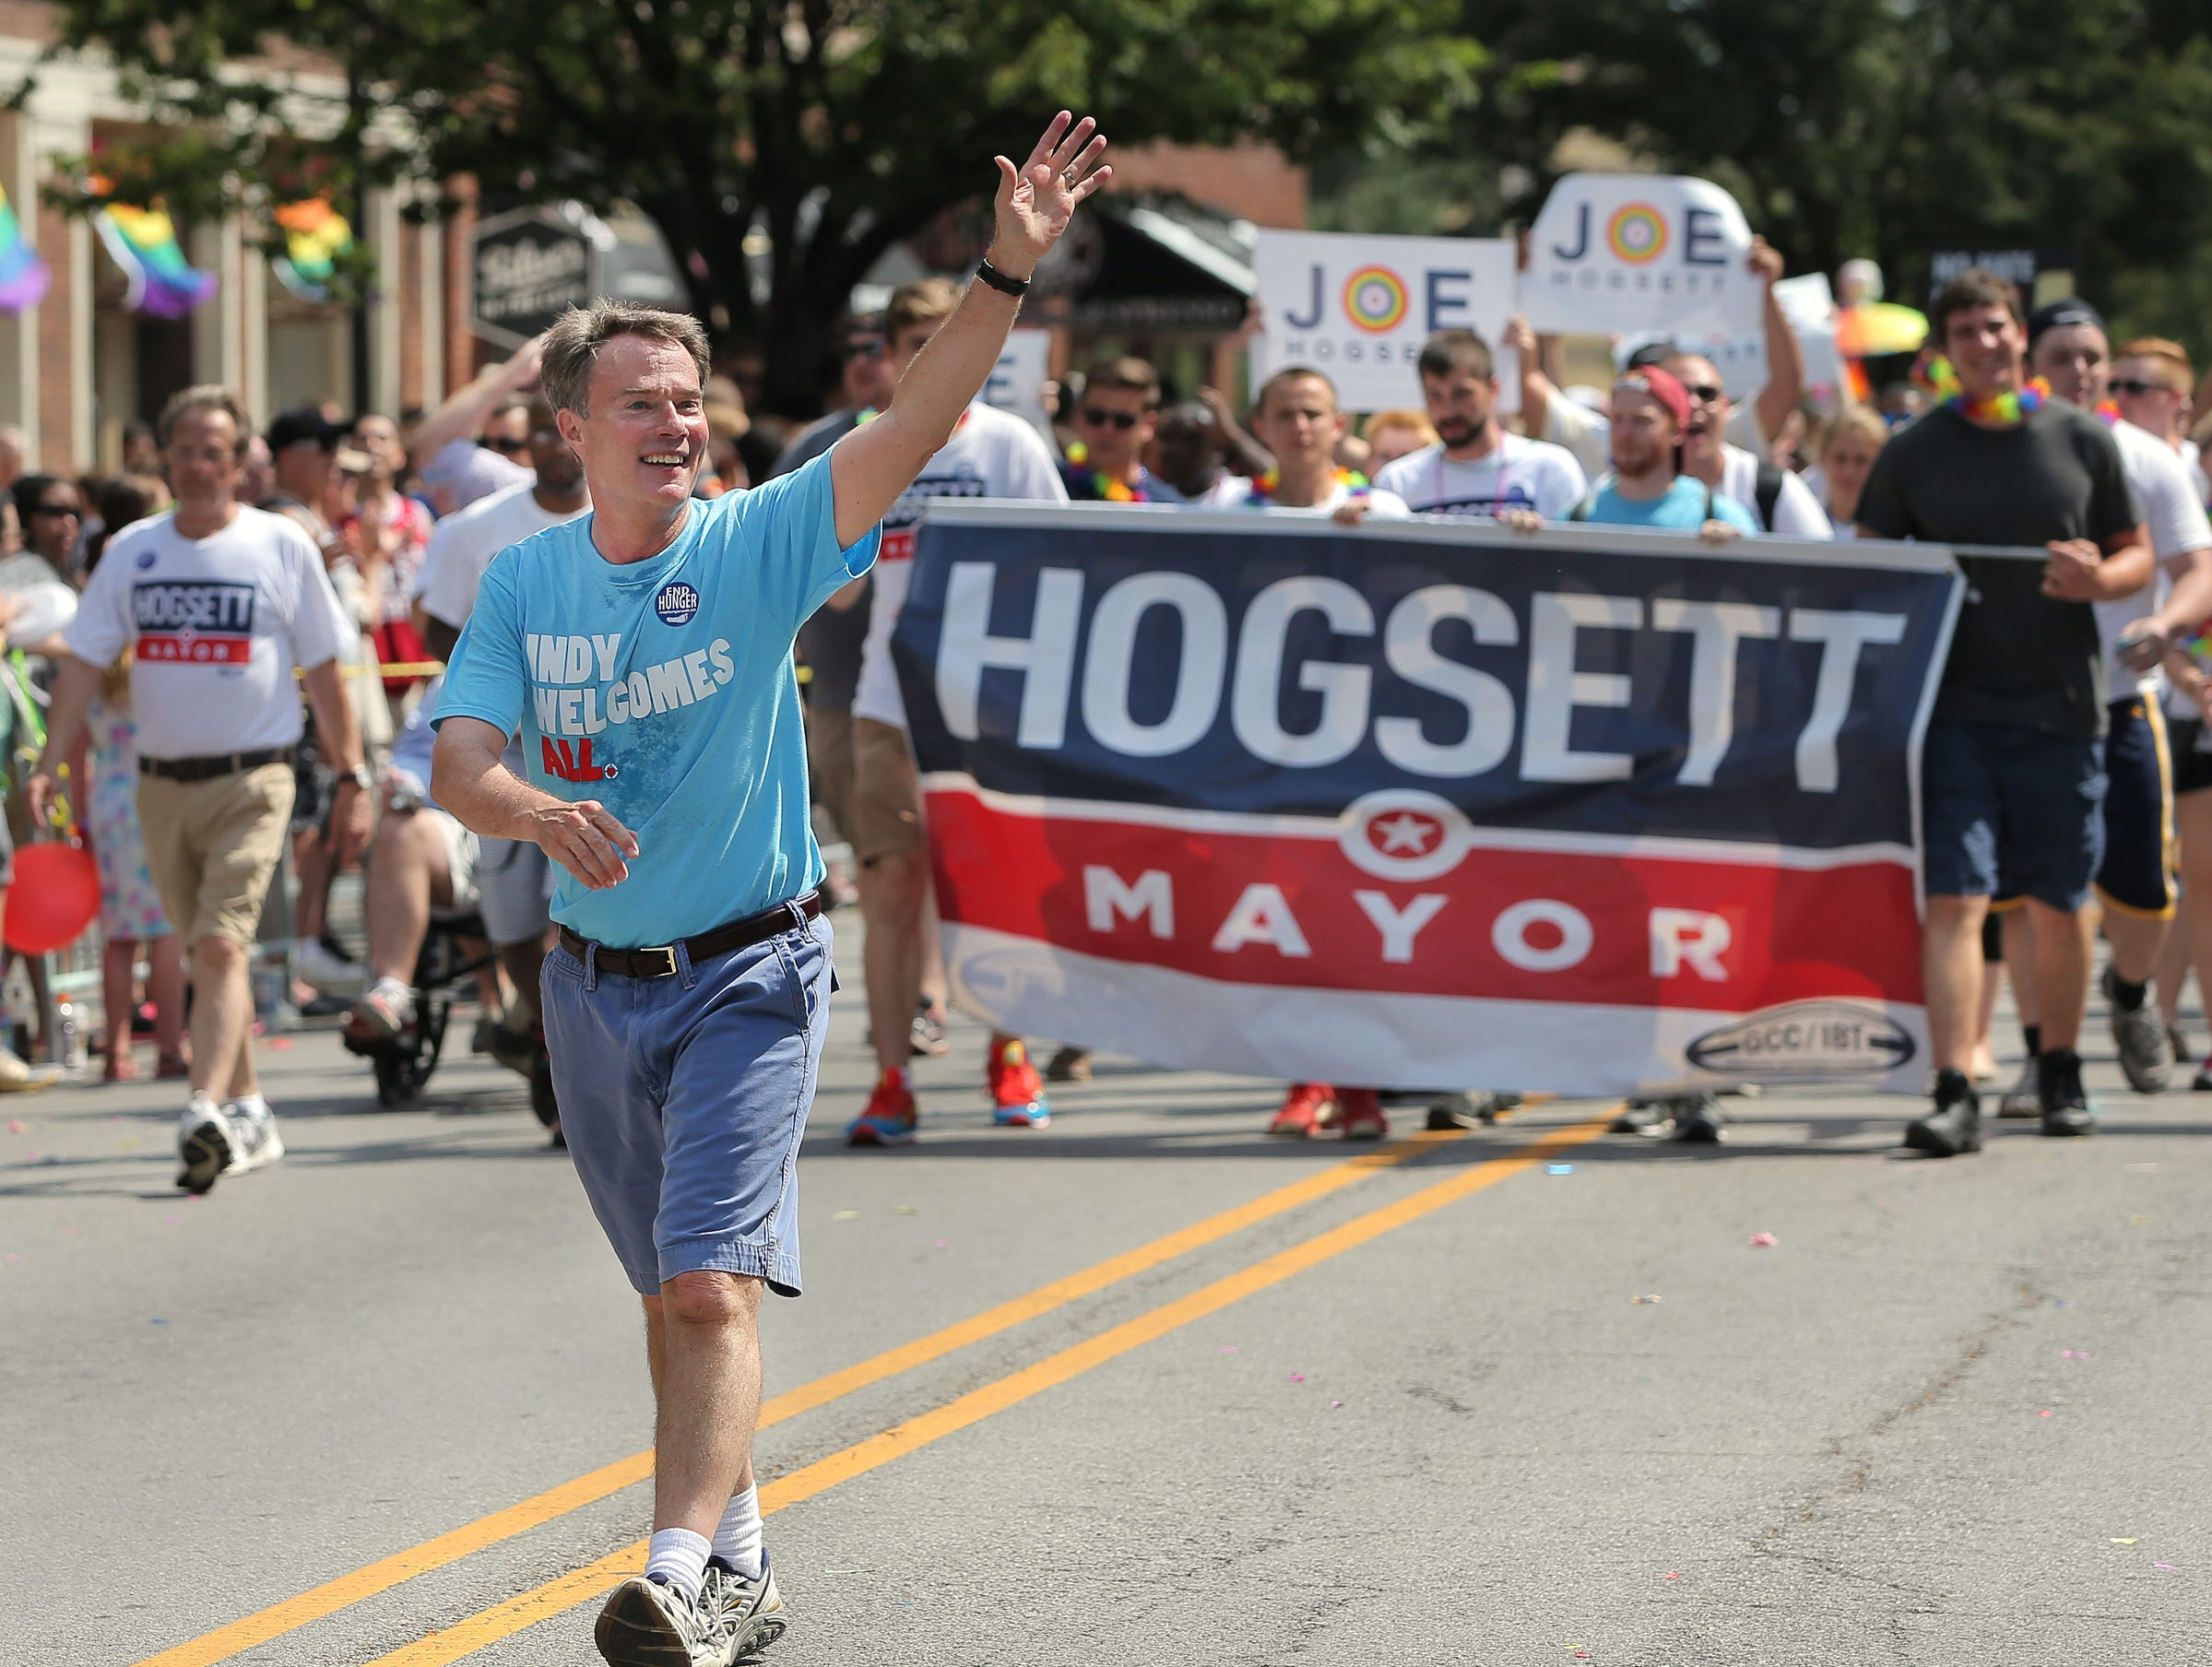 Mayoral candidate Joe Hogsett waves to the crowd during the Cadillac Barbie IN Pride Parade in downtown Indianapolis on Saturday, June 13, 2015.